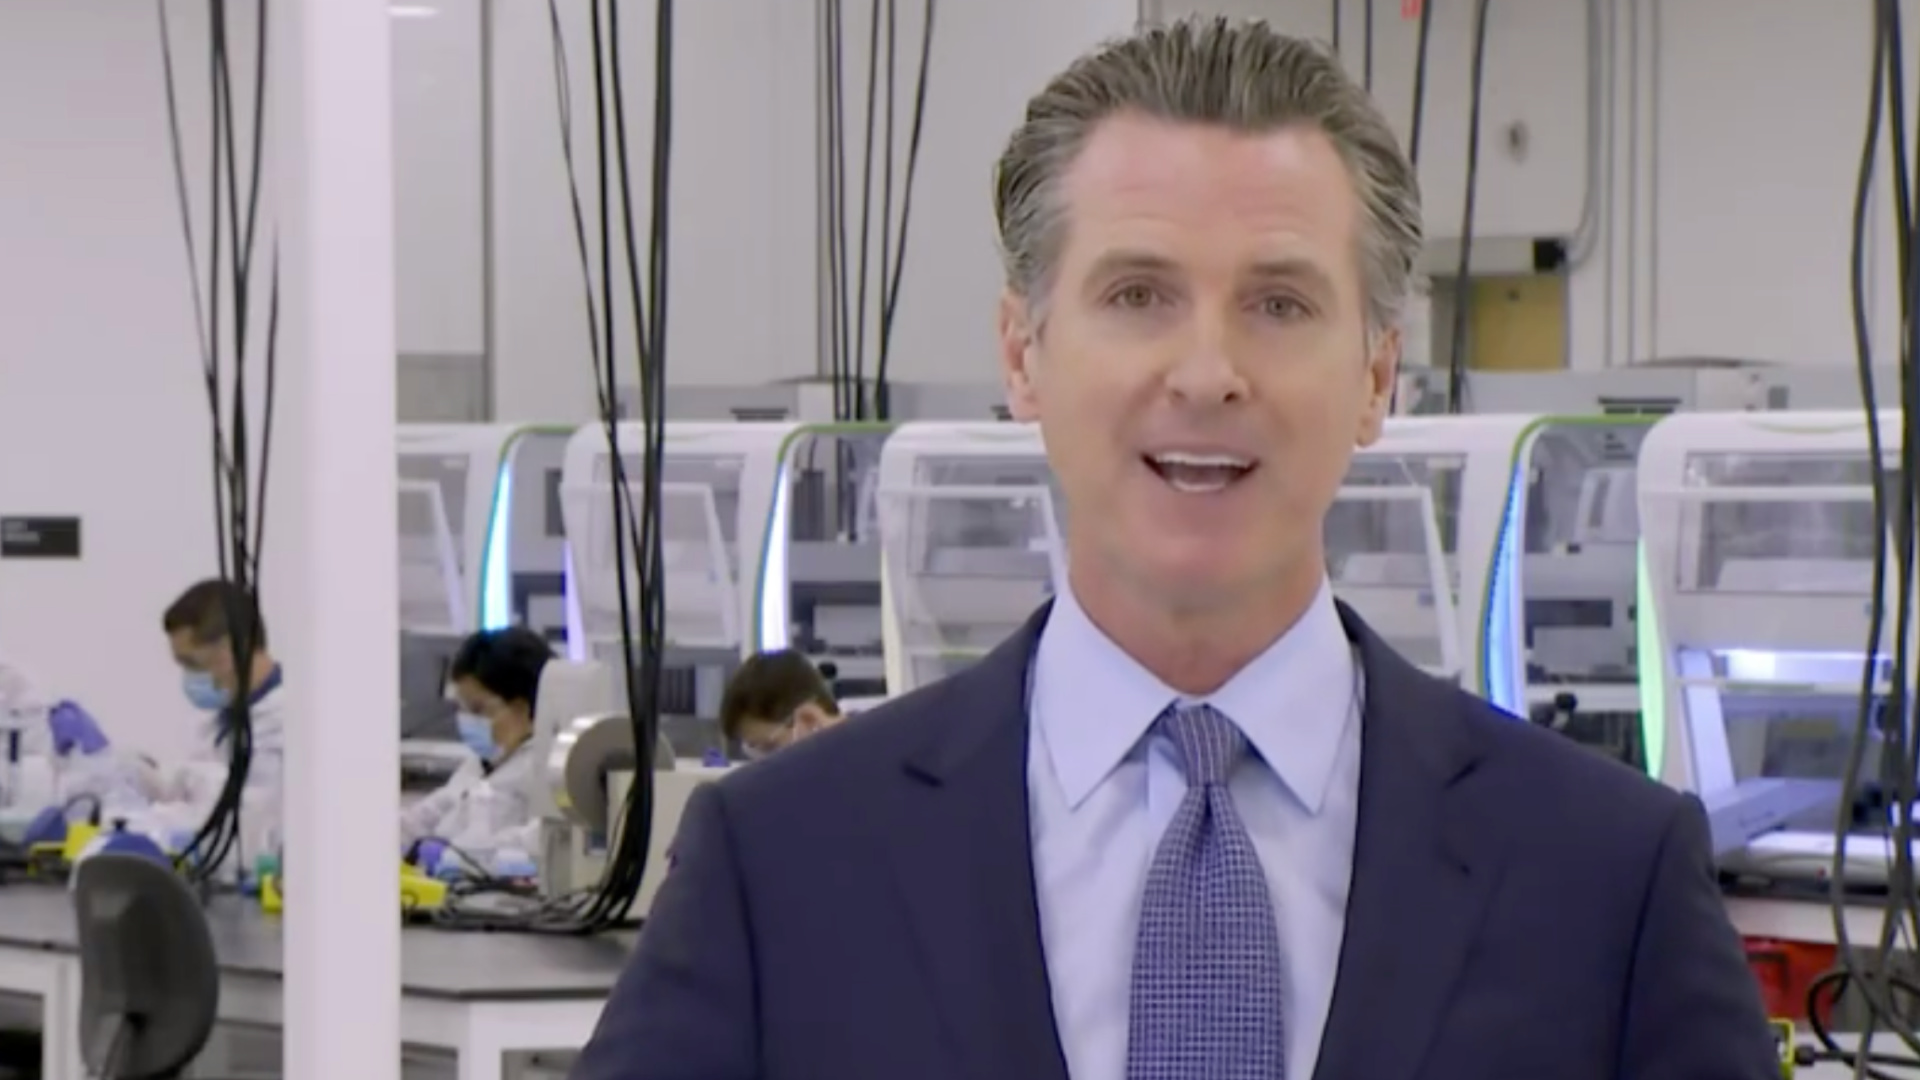 Gov. Gavin Newsom is seen at a new coronavirus testing site in Valencia on Oct. 30, 2020. (POOL)